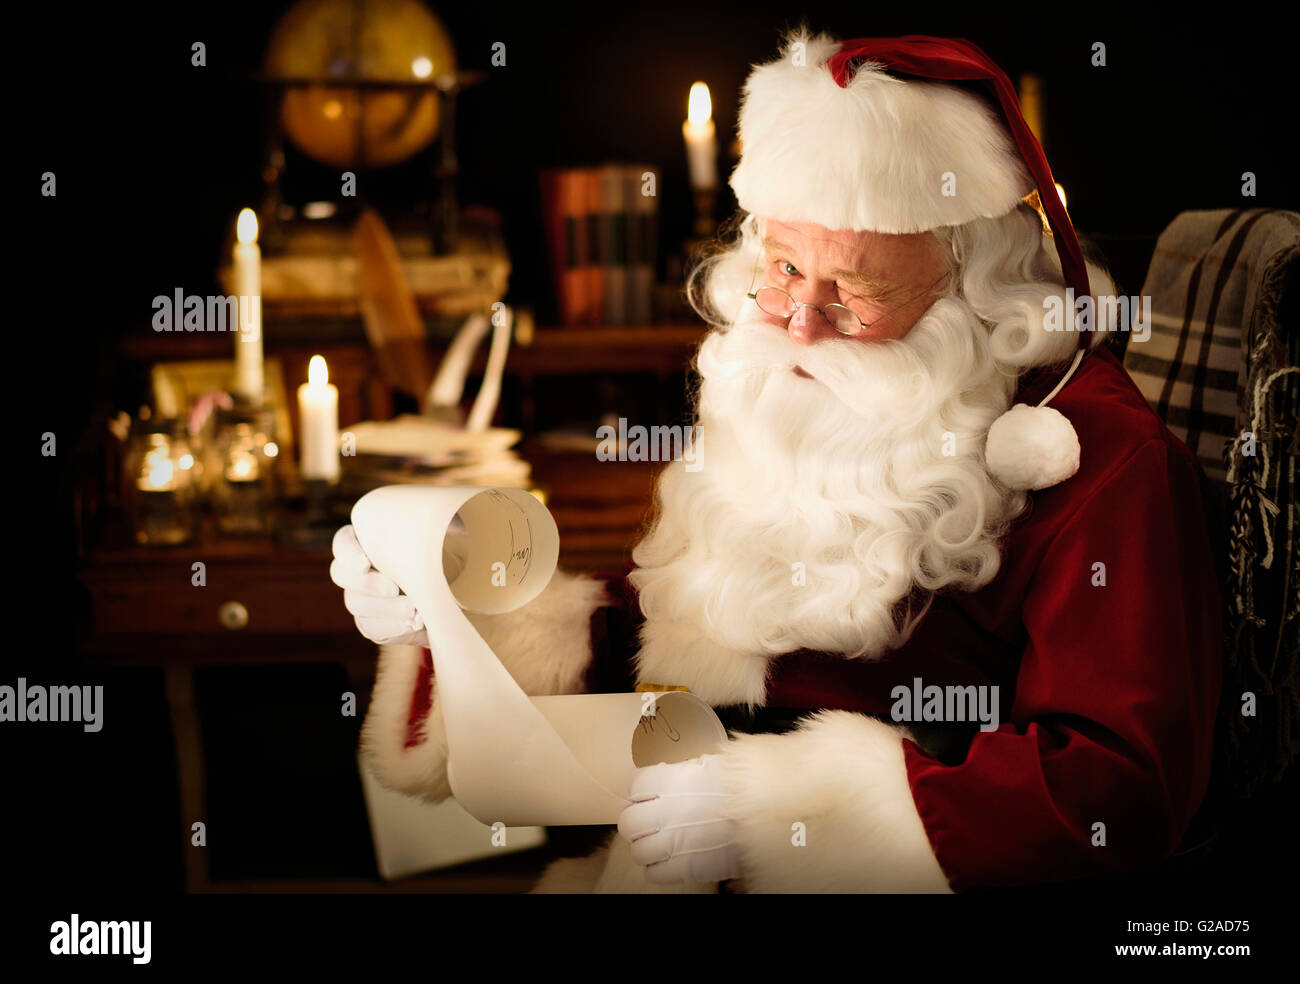 Portrait Of Santa Claus Reading ChildS Letter And Winking Stock